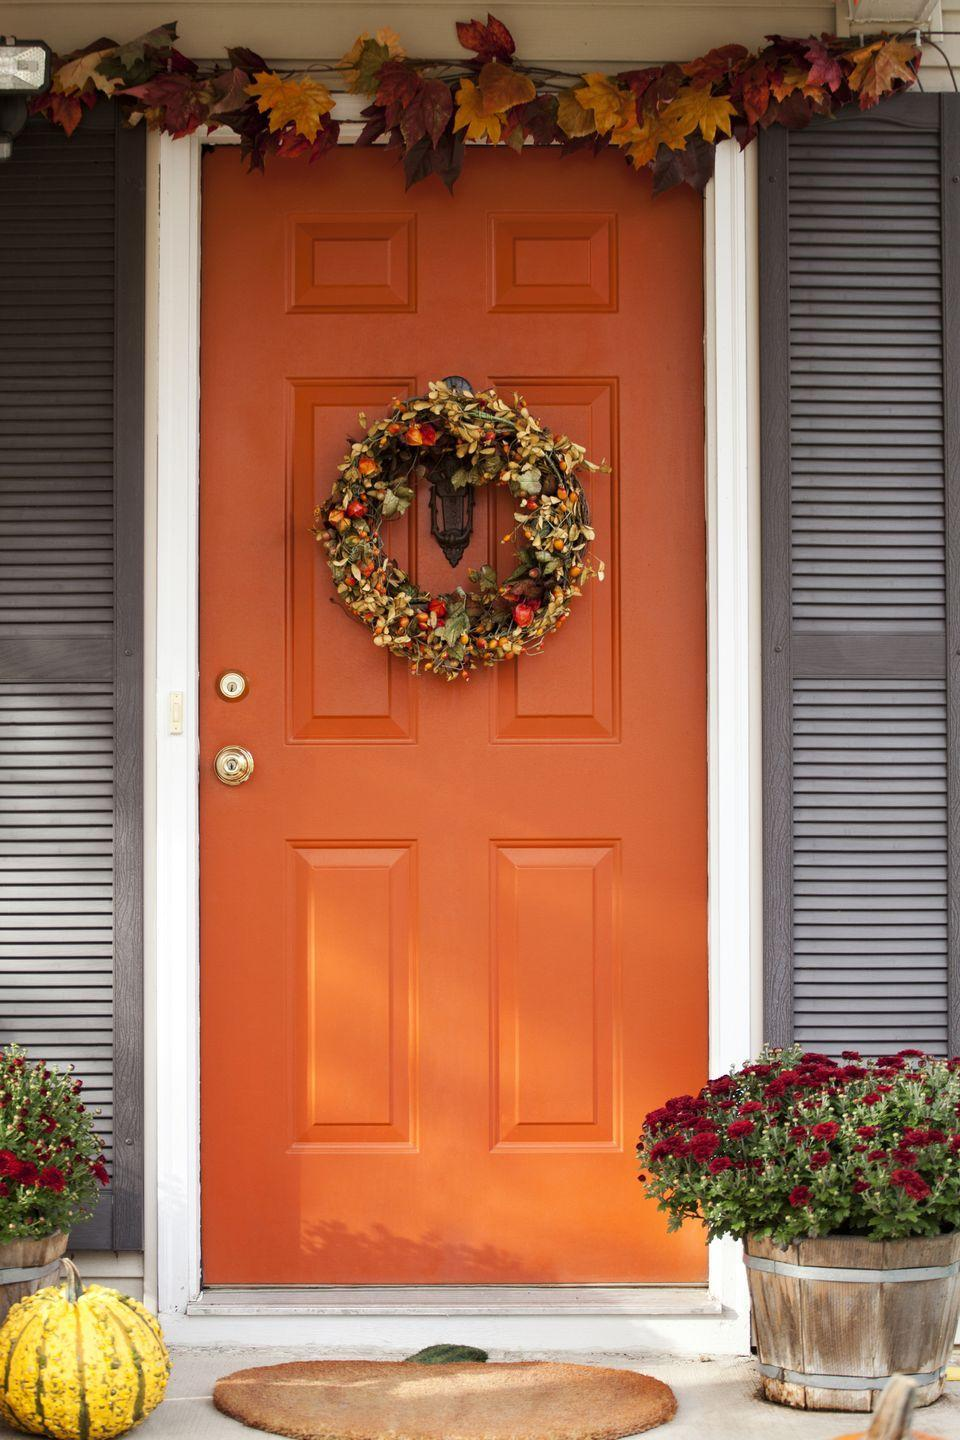 """<p>Opt for a sophisticated Halloween look by lining the top of your door with foliage, hanging a striking wreath, and placing a pumpkin or two near potted floral arrangements. <br><br><a class=""""link rapid-noclick-resp"""" href=""""https://go.redirectingat.com?id=74968X1596630&url=https%3A%2F%2Fwww.etsy.com%2Flisting%2F485606221%2Fpreserved-maple-leaves-choose-your&sref=https%3A%2F%2Fwww.goodhousekeeping.com%2Fholidays%2Fhalloween-ideas%2Fg32948621%2Fhalloween-door-decorations%2F"""" rel=""""nofollow noopener"""" target=""""_blank"""" data-ylk=""""slk:SHOP MAPLE LEAVES"""">SHOP MAPLE LEAVES</a></p>"""